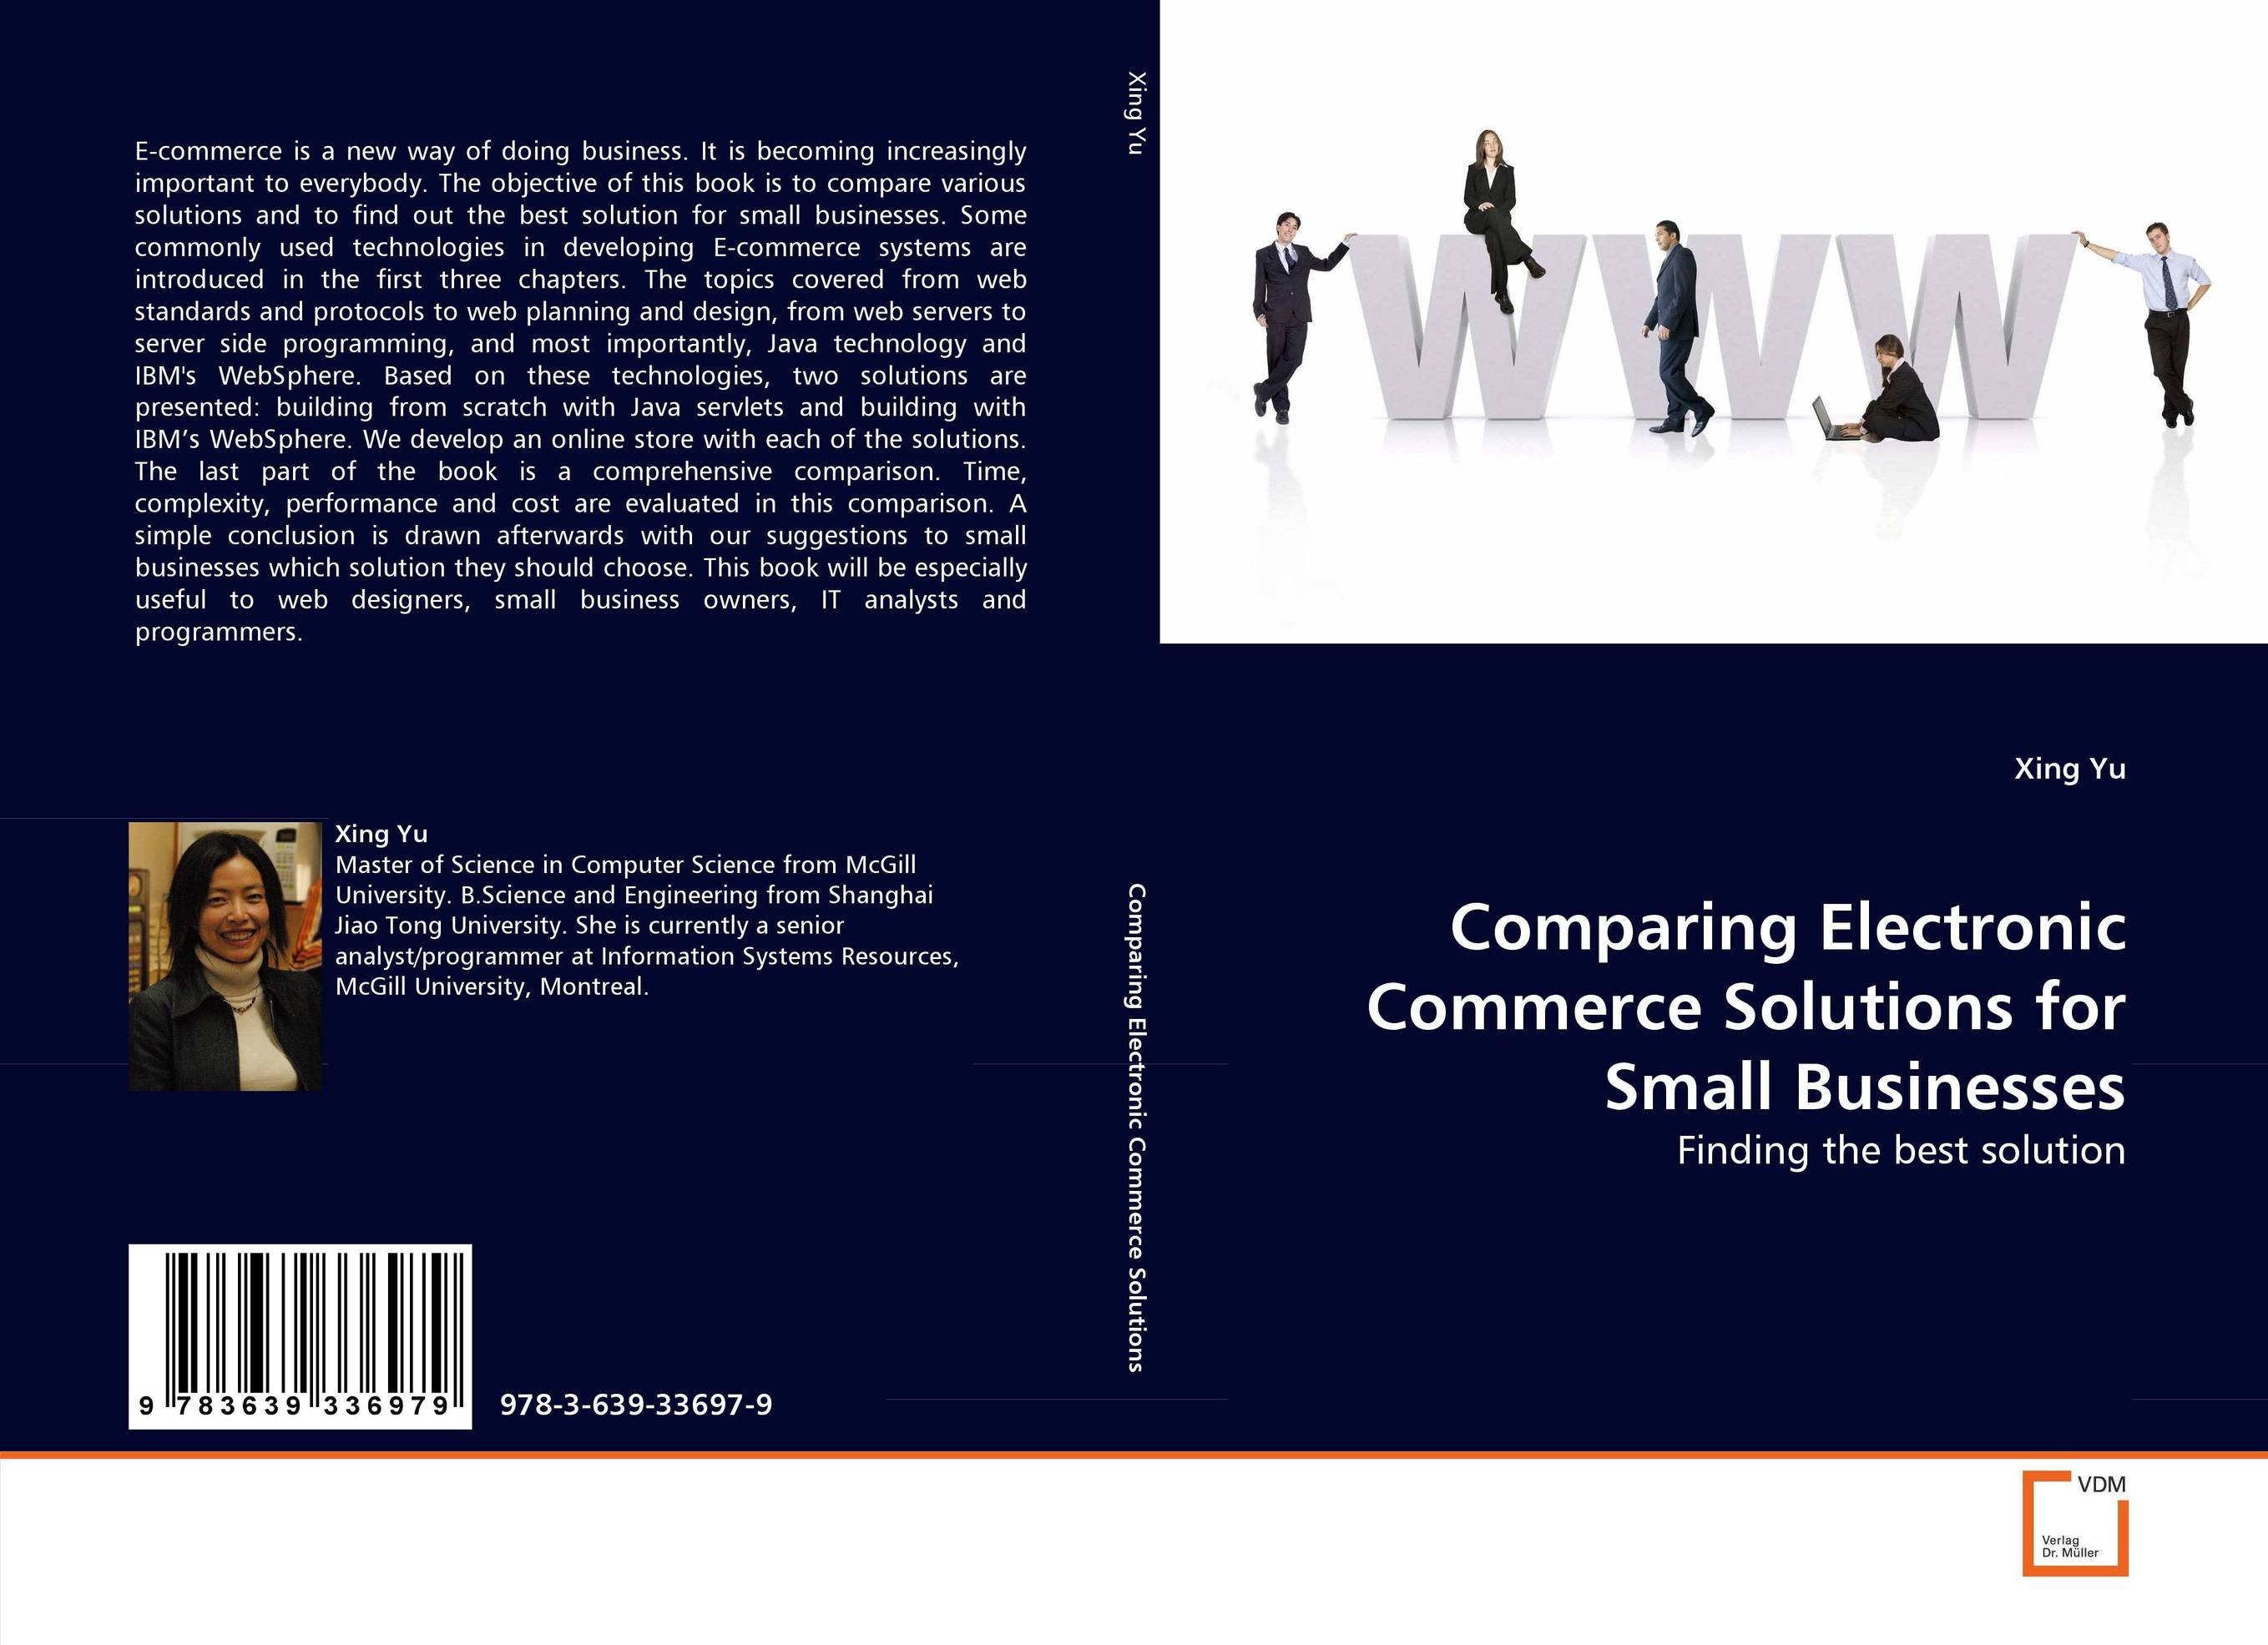 Comparing Electronic Commerce Solutions for Small Businesses